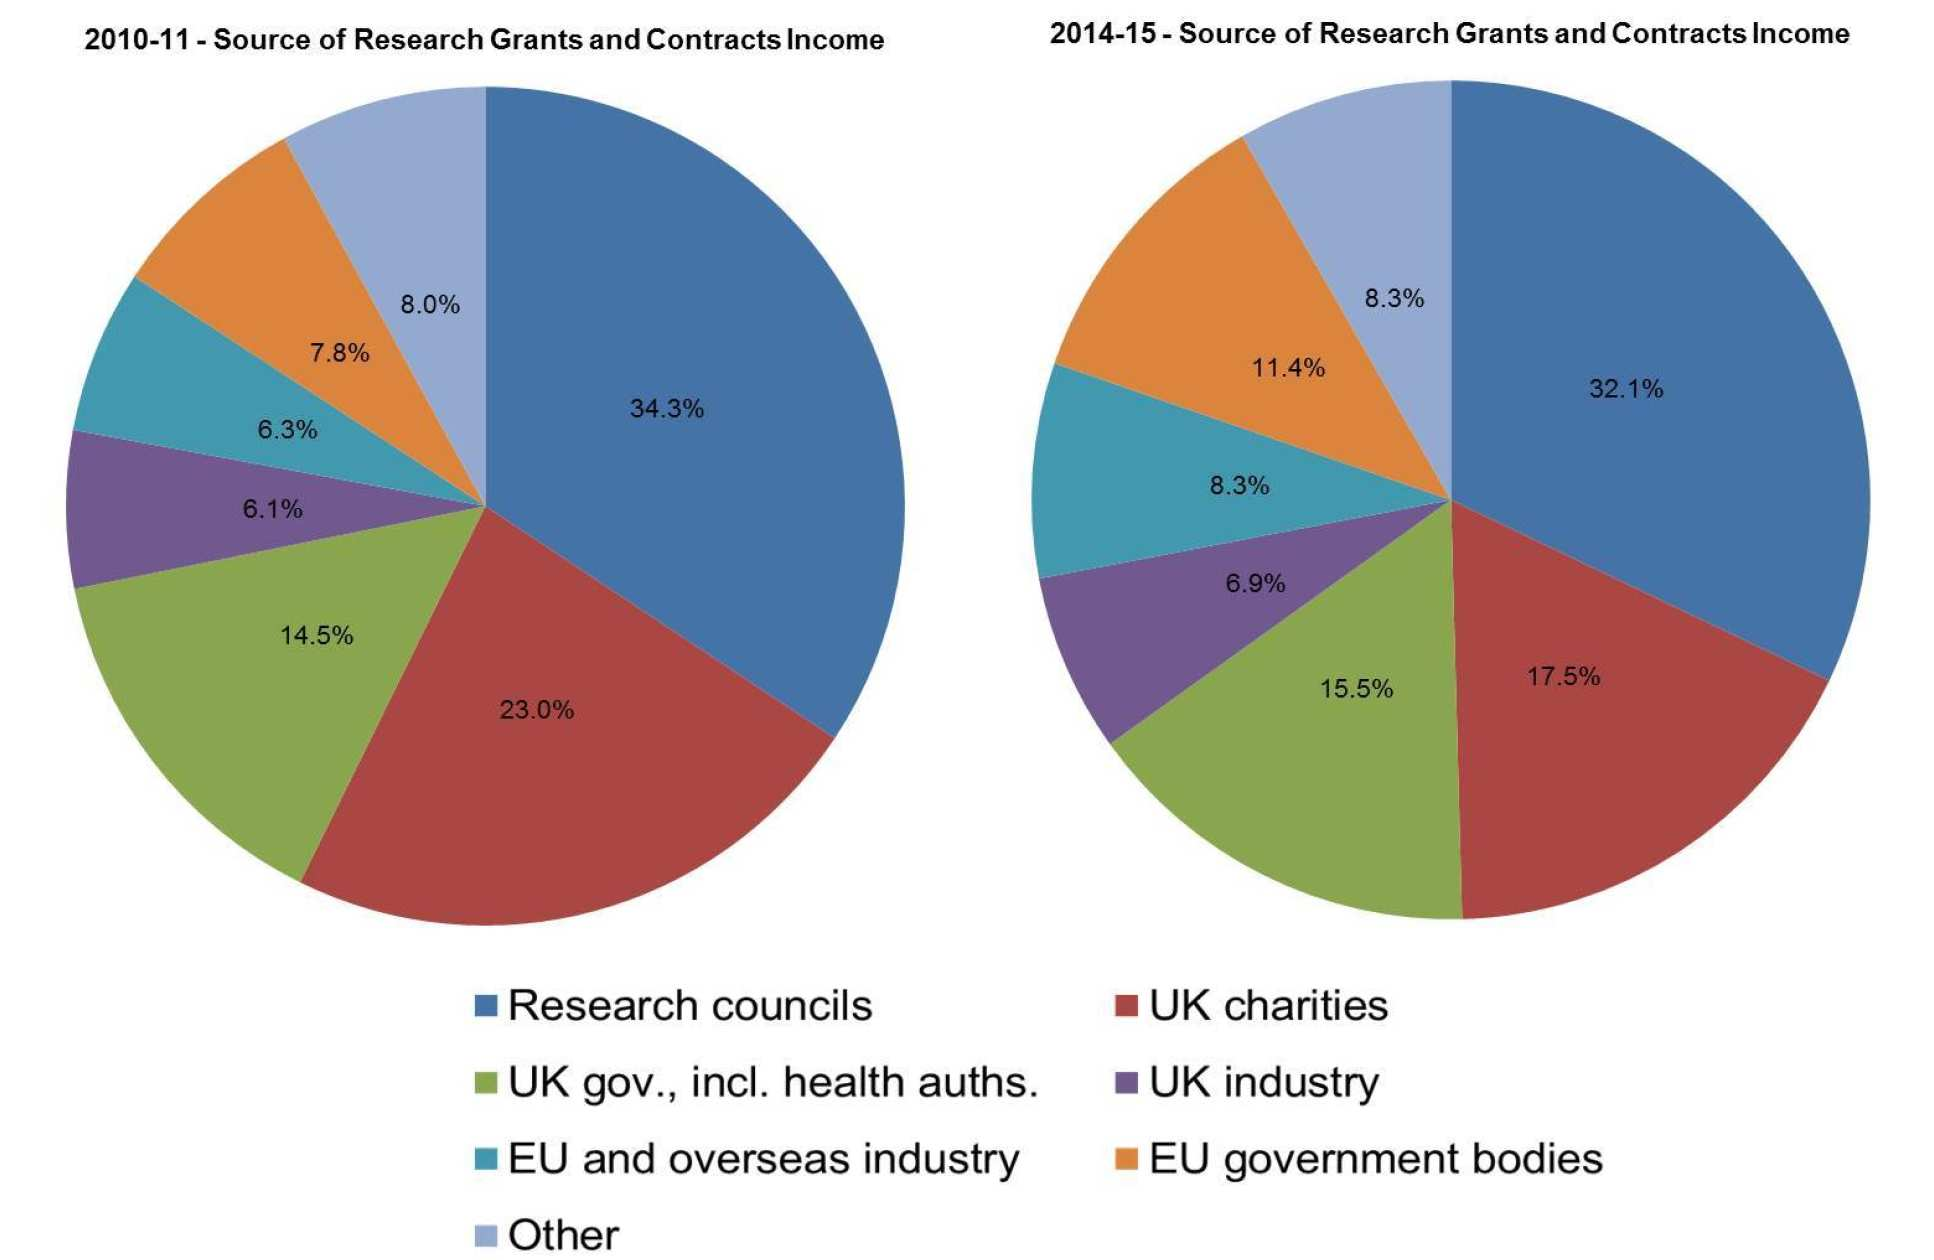 Source of Research Grants